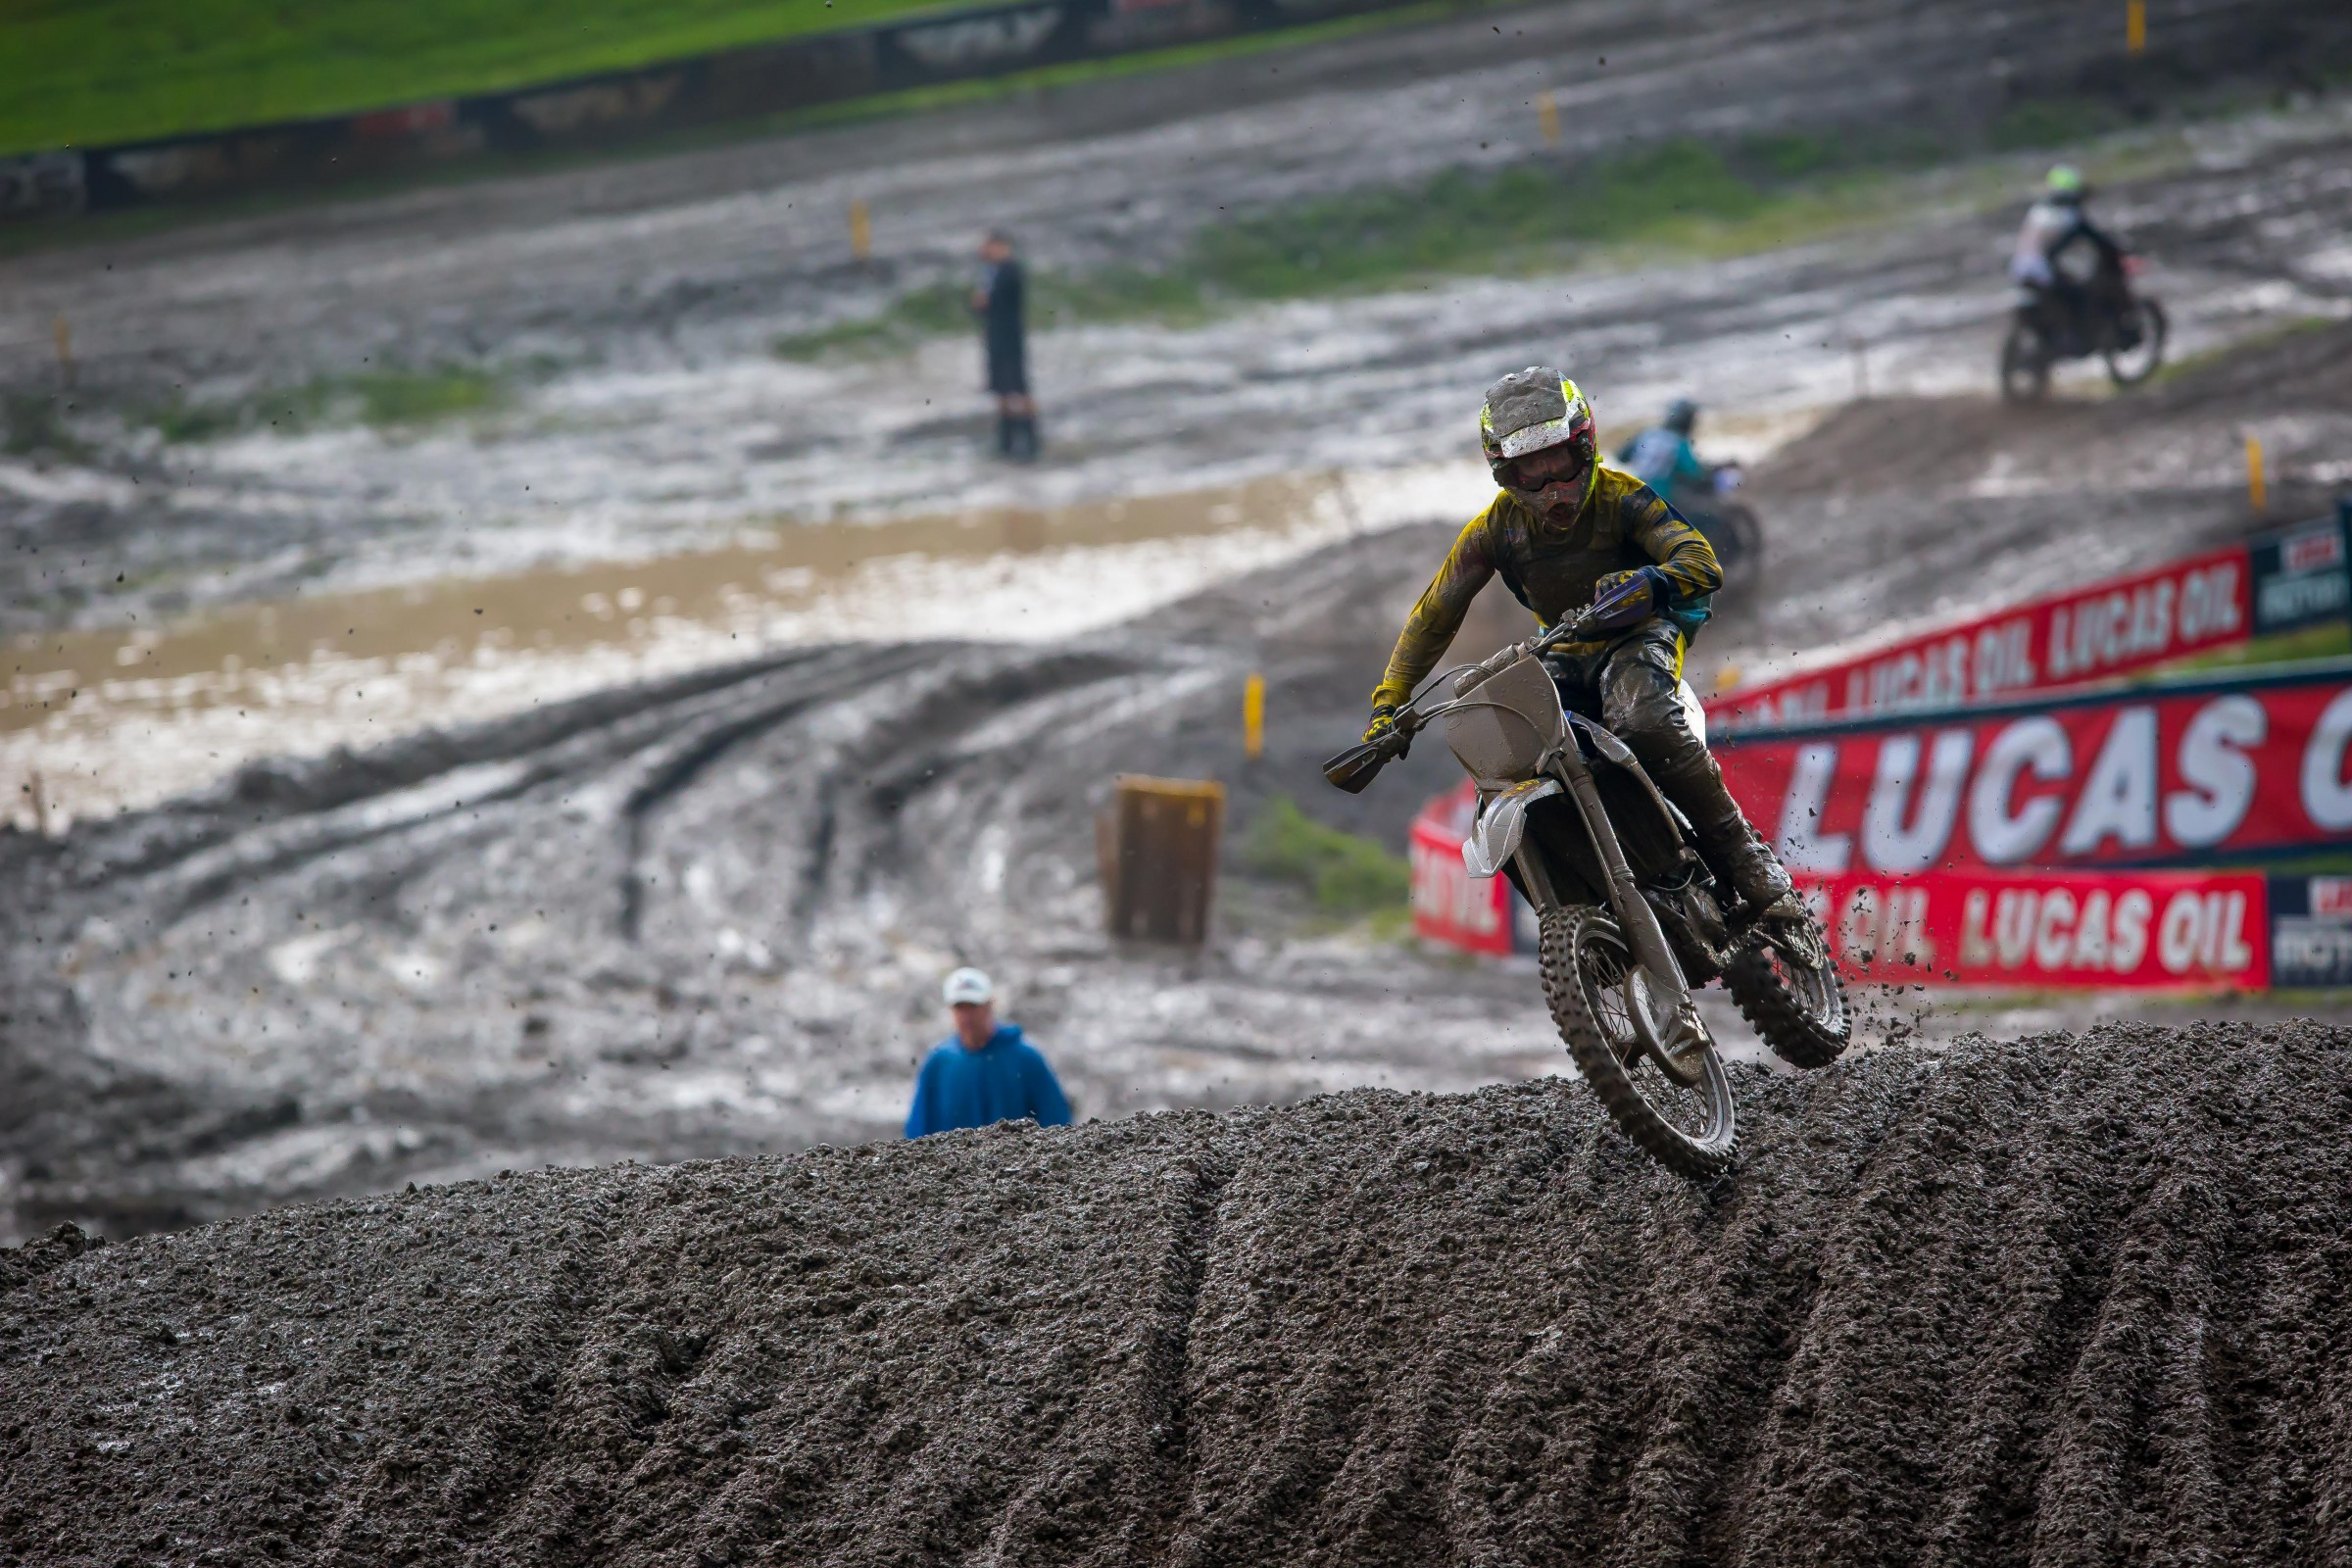 Cooper finished second in the second moto at his home national at Unadilla.